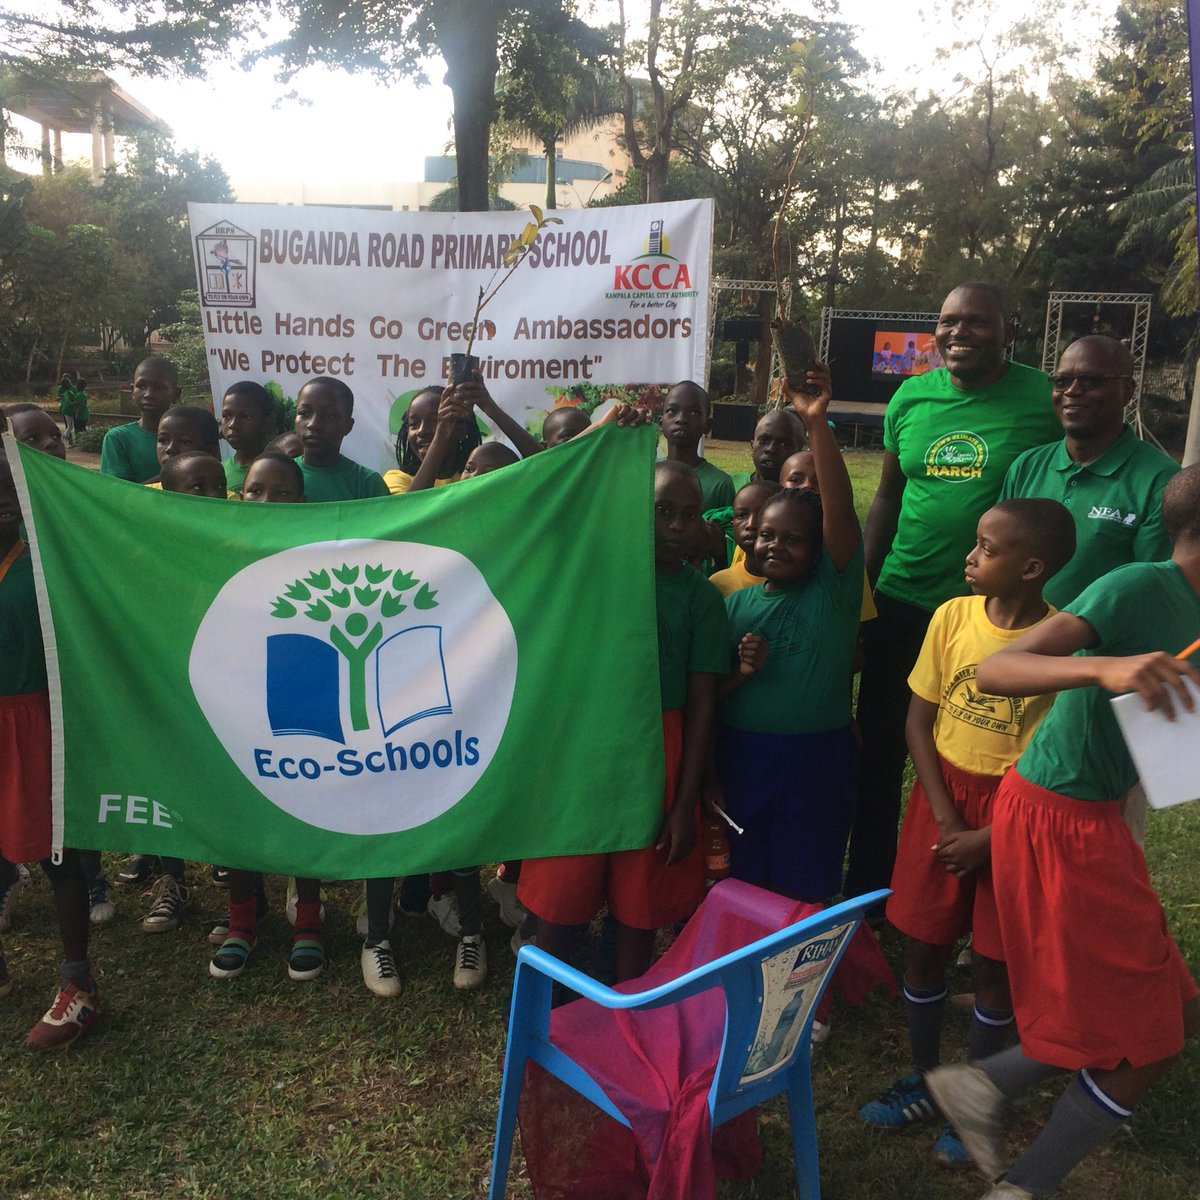 Pupils of Buganda Road Primary School flagged off in the ClimateWalk organised by Little Hands Go Green to create awareness on climate change and mitigation measures (PML Daily Photo)